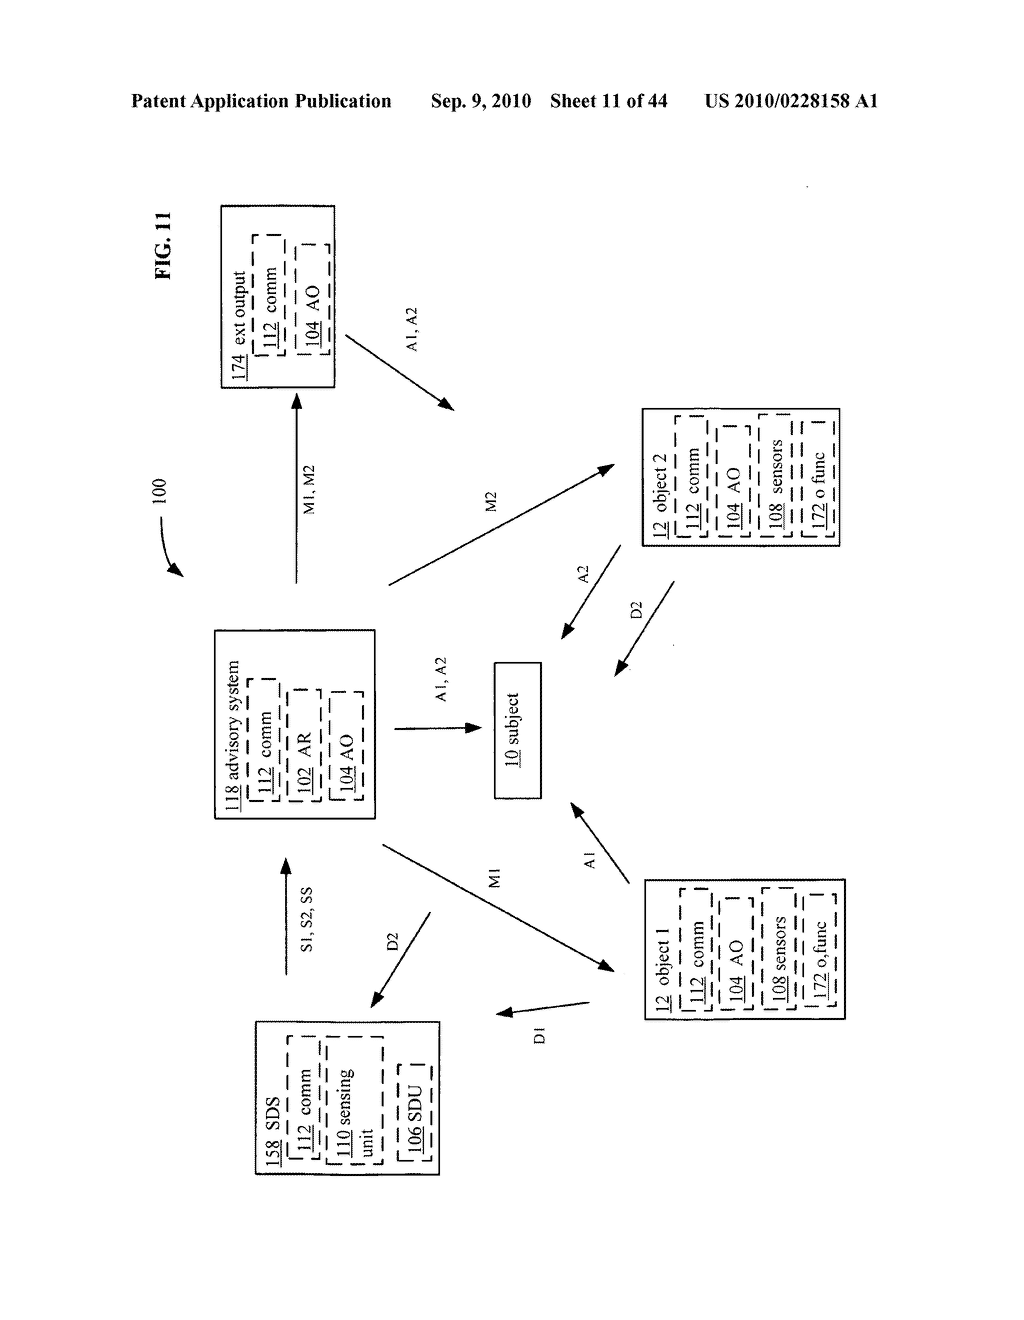 POSTURAL INFORMATION SYSTEM AND METHOD INCLUDING DEVICE LEVEL DETERMINING OF SUBJECT ADVISORY INFORMATION BASED ON SUBJECT STATUS INFORMATION AND POSTURAL INFLUENCER STATUS INFORMATION - diagram, schematic, and image 12